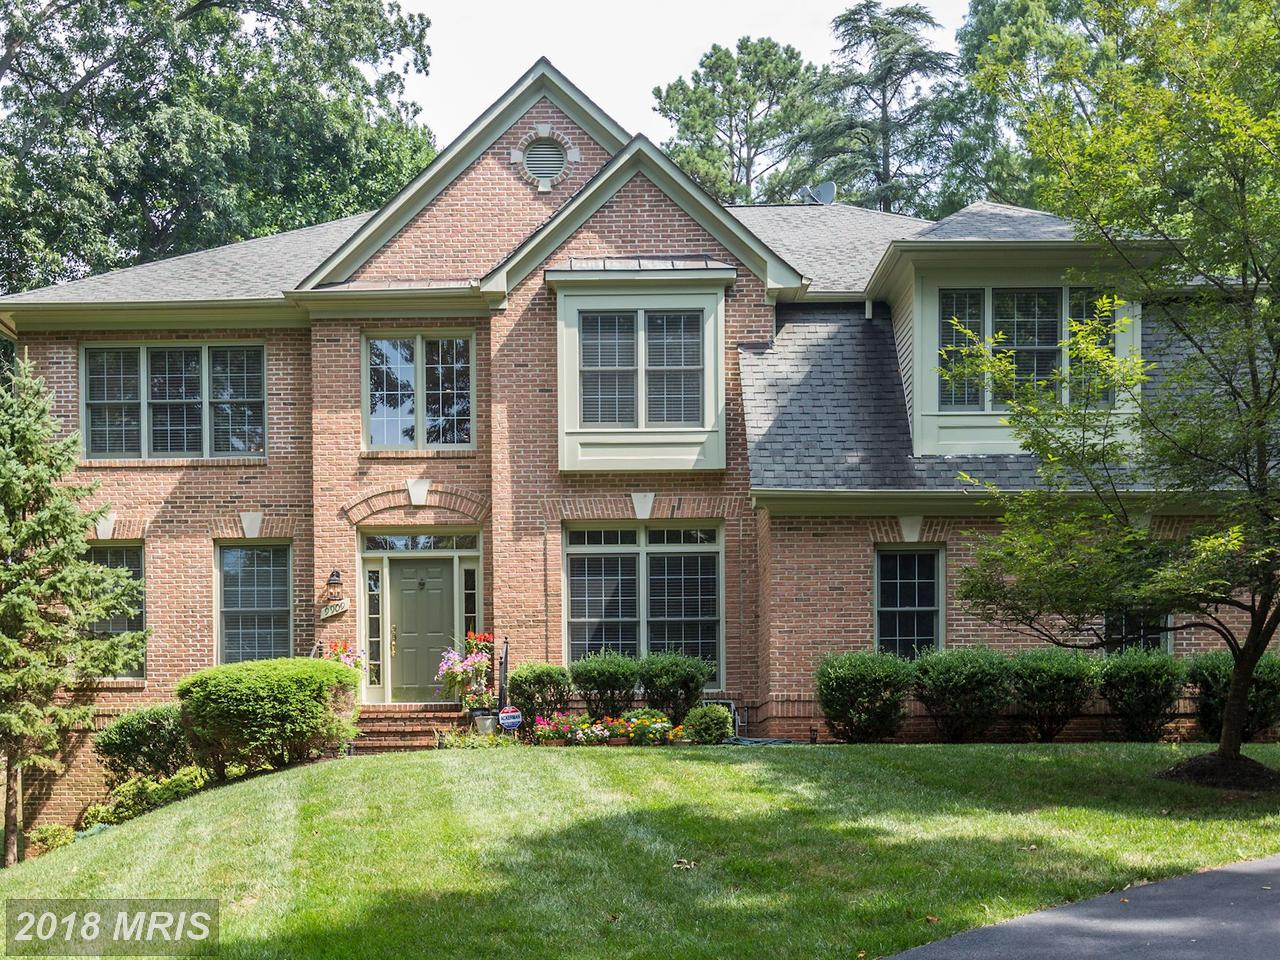 Villa per Vendita alle ore Colonial, Detached - ROCKVILLE, MD 9909 ALDERSGATE RD Rockville, Maryland,20850 Stati Uniti